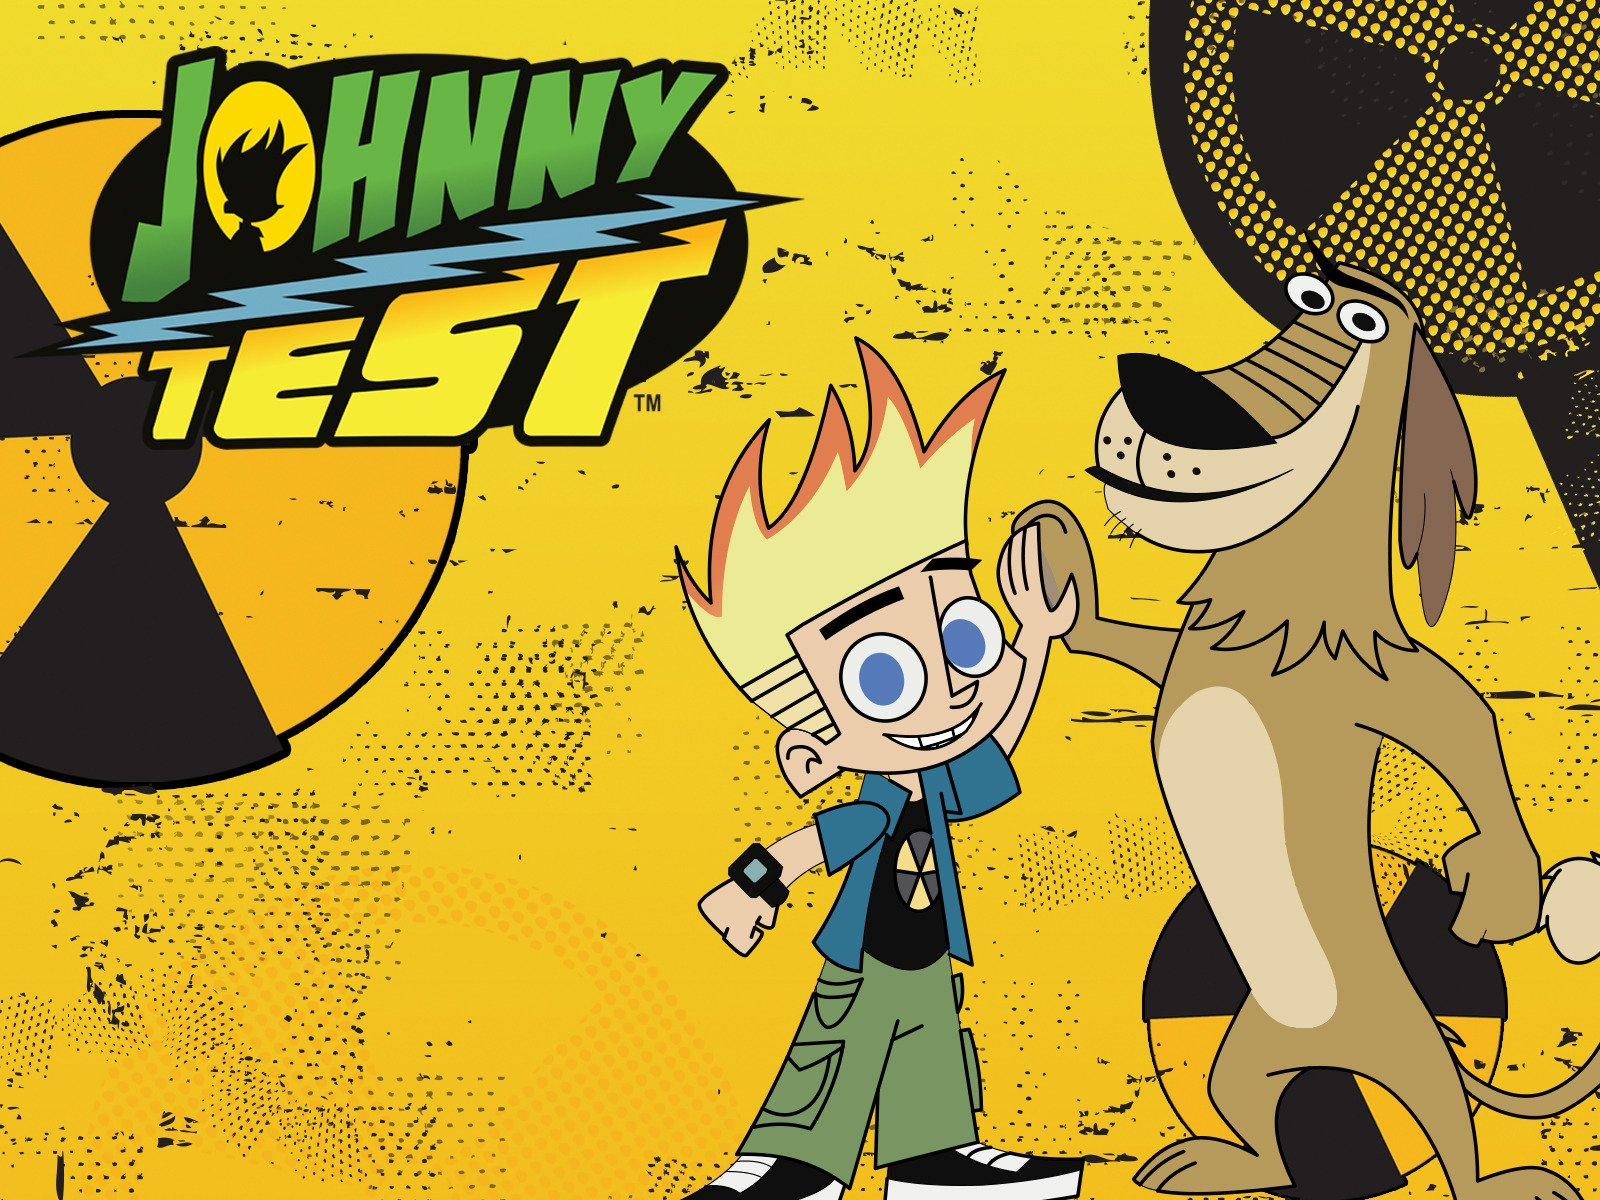 SPOTLIGHT ON: JOHNNY TEST   Johnny Test fans will be thrilled to hear the show is being rebooted! A season 7 is slated to be released in 2020. We just landed this series to work on the Script Clearance Reports. For an already established show, it makes some things a littler easier. However, we're excited to start tackling the reports for the upcoming series.  Johnny Test is an American-Canadian animated television series produced by Warner Bros. The series revolves around the adventures of Johnny Test, his super-genius 13-year-old twin sisters, Susan and Mary, and a talking dog named Dukey.  Johnny is often used as a test subject for his genius twin sisters' inventions and experiments, which range from gadgets to superpowers. Their experiments often cause problems that he must resolve and he must sometimes fight villains in the process.  You can also watch the first 6 seasons on YouTube